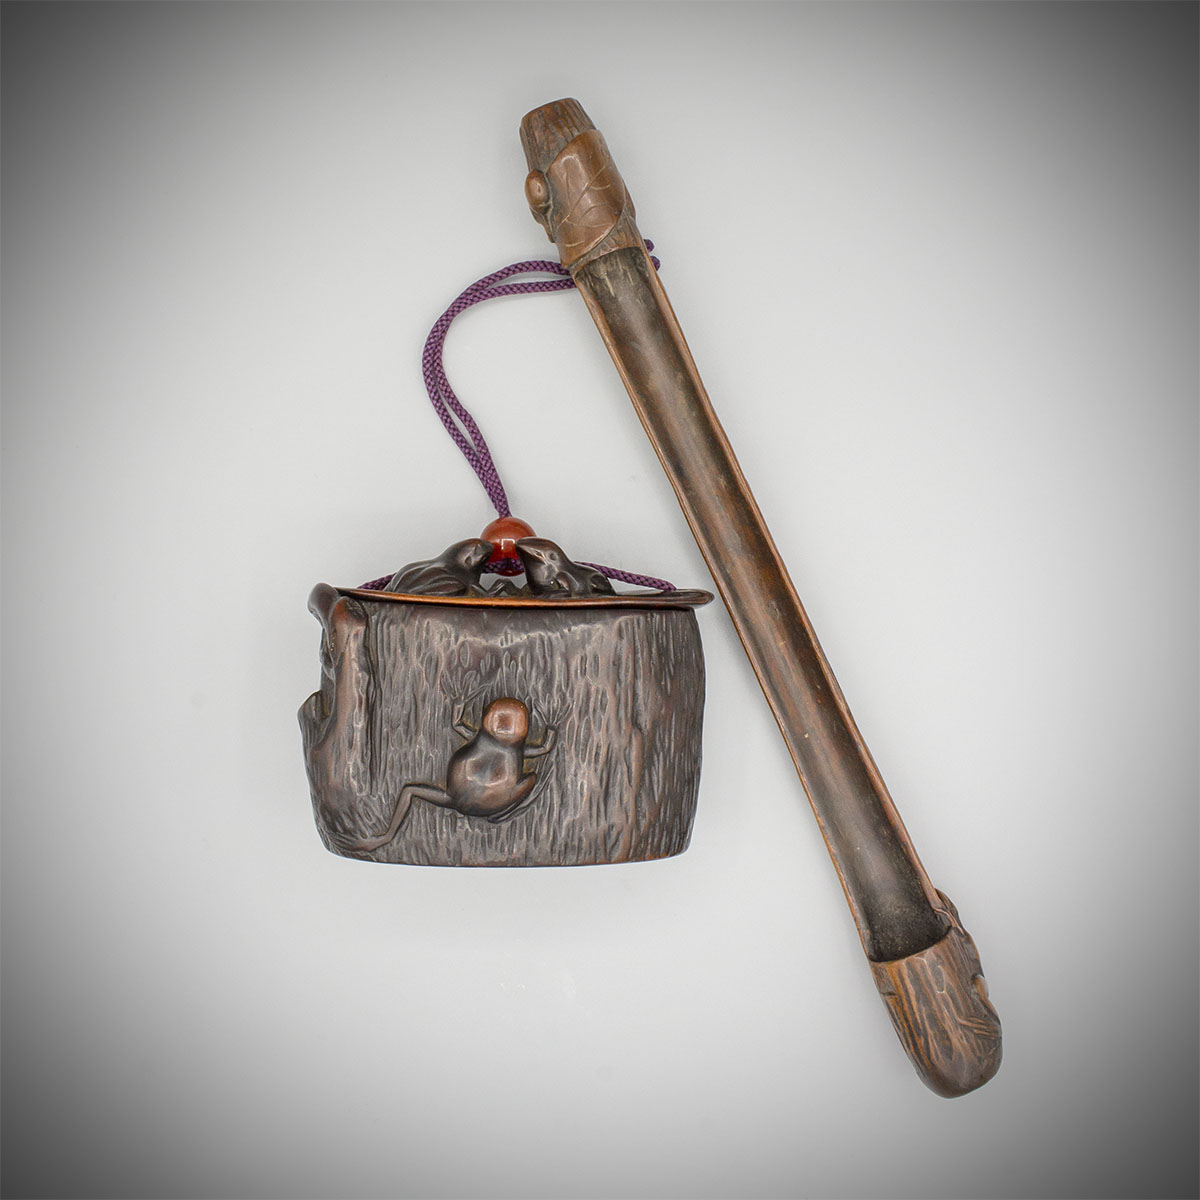 A wood smoking set of pipe case and tonkotsu with frogs, MR3665_v.1